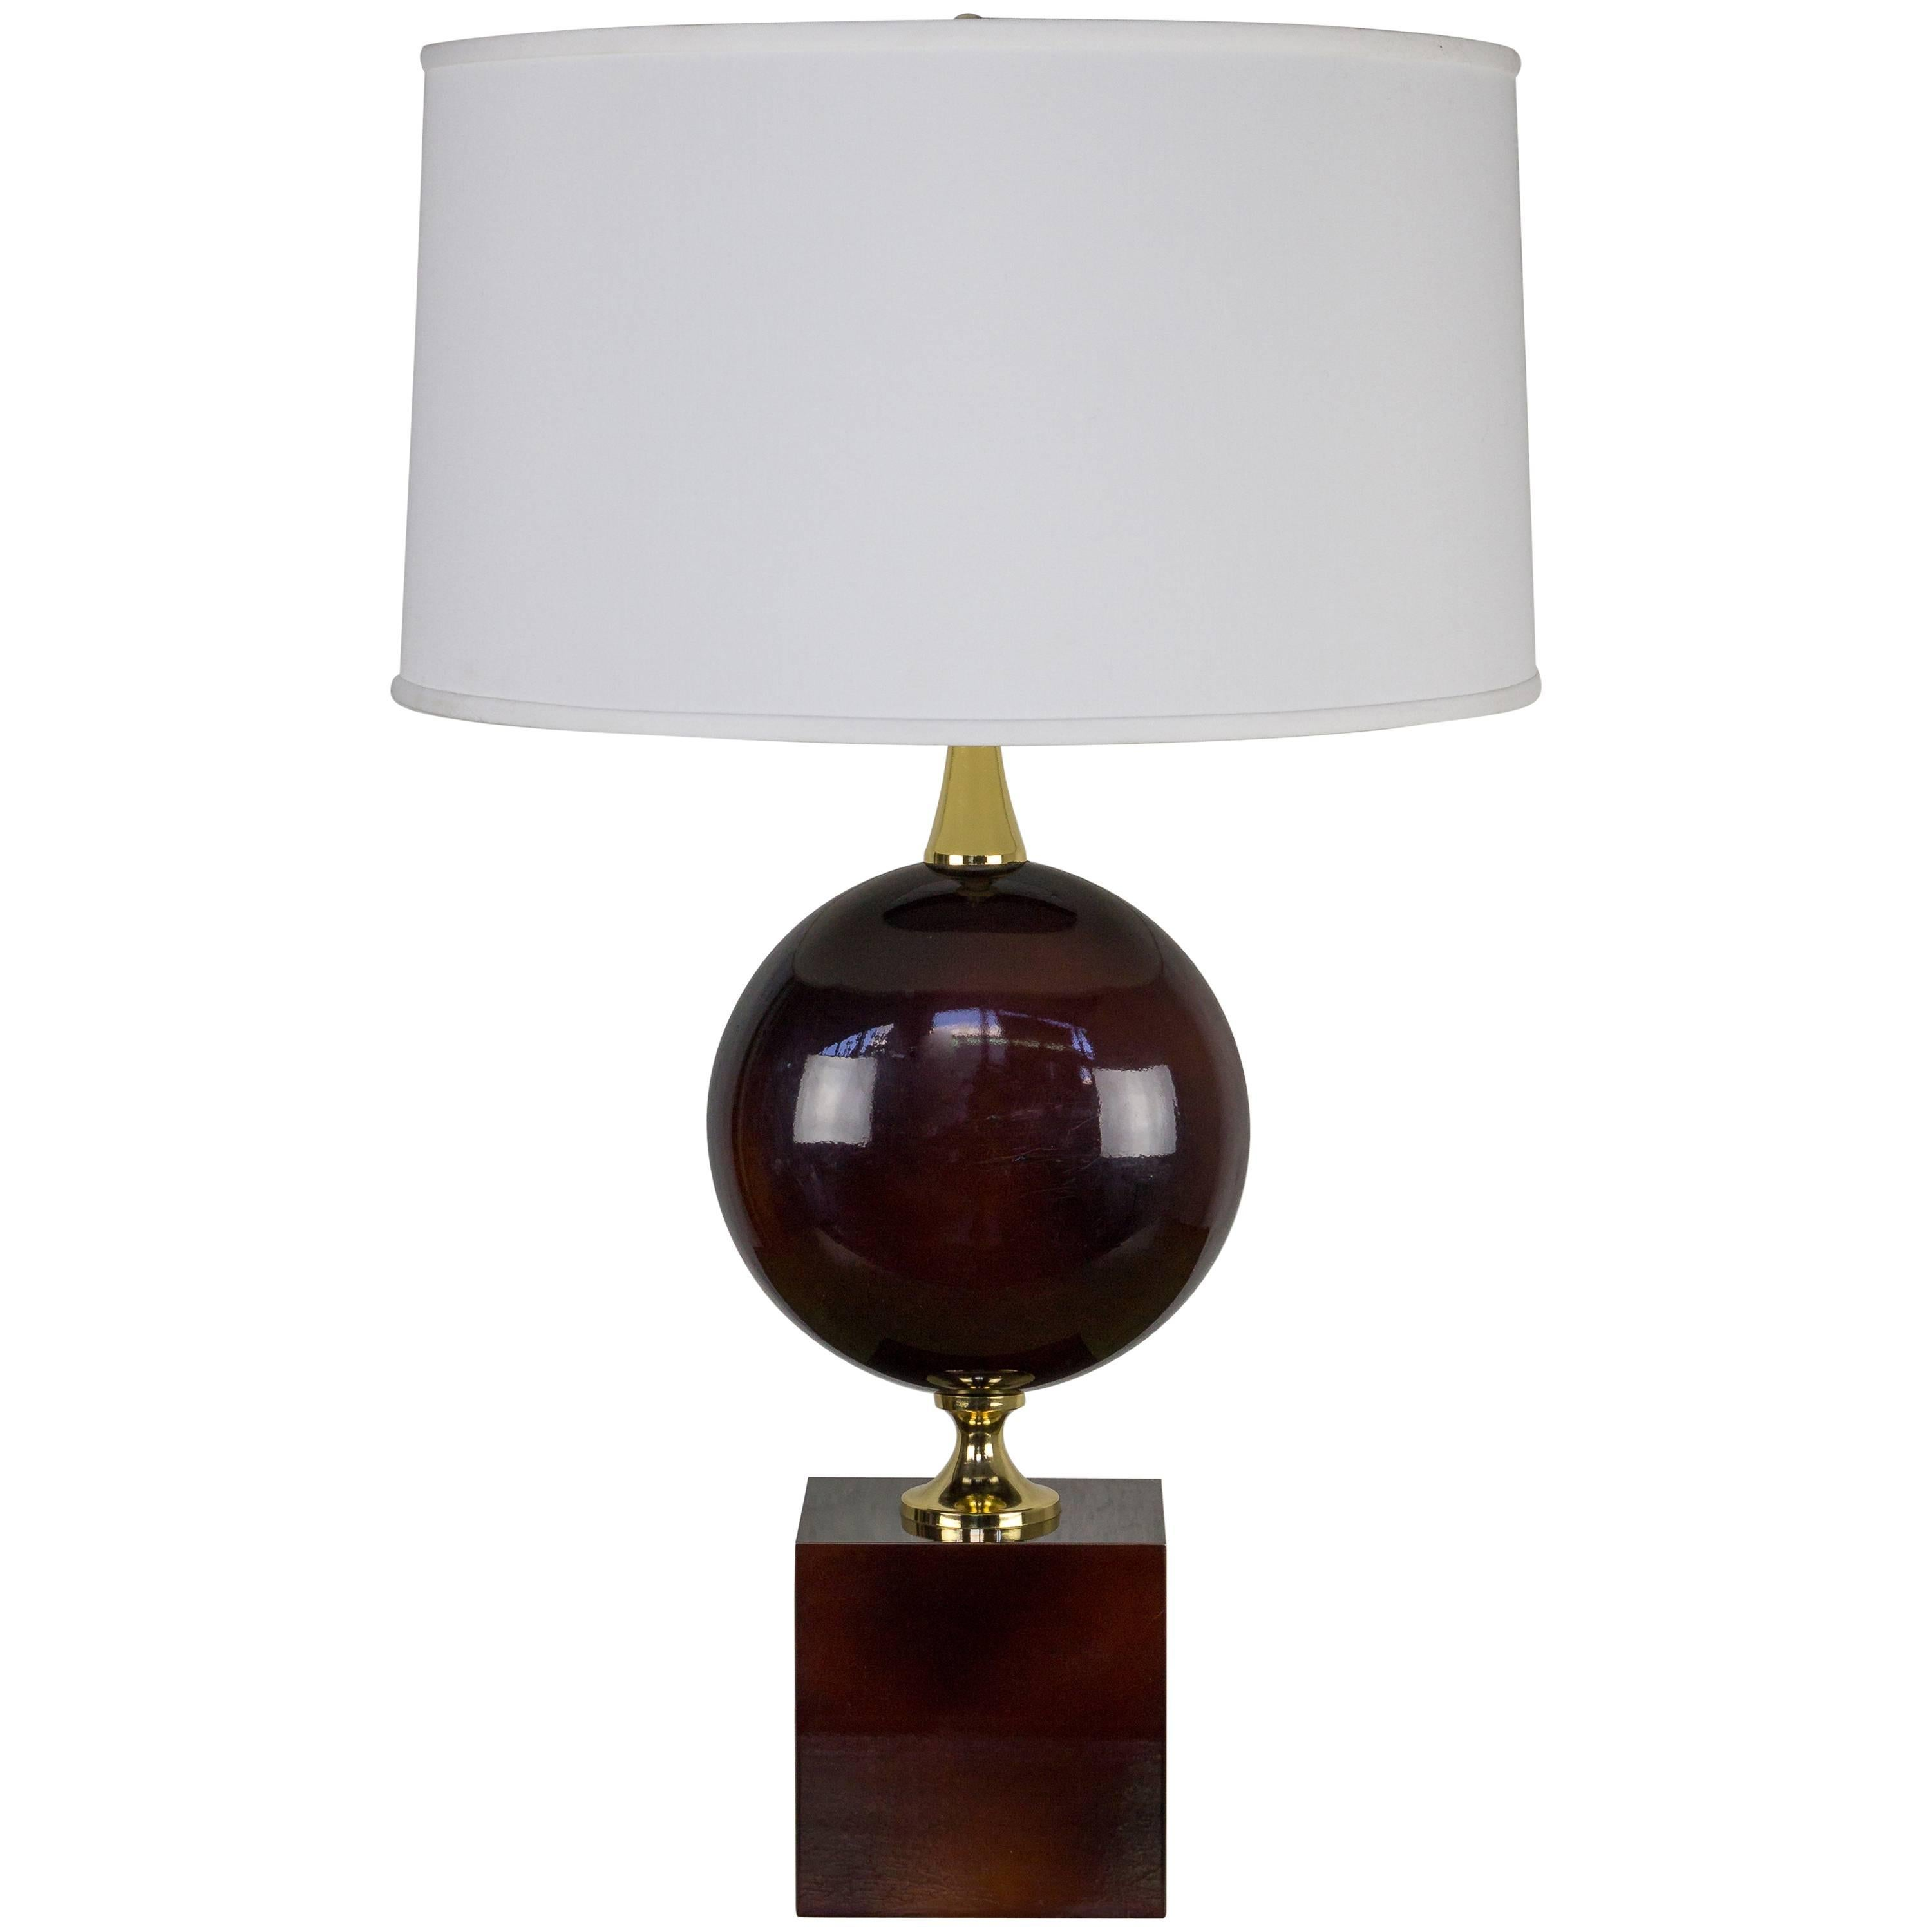 French Aubergine Enameled Table Lamp by Maison Barbier